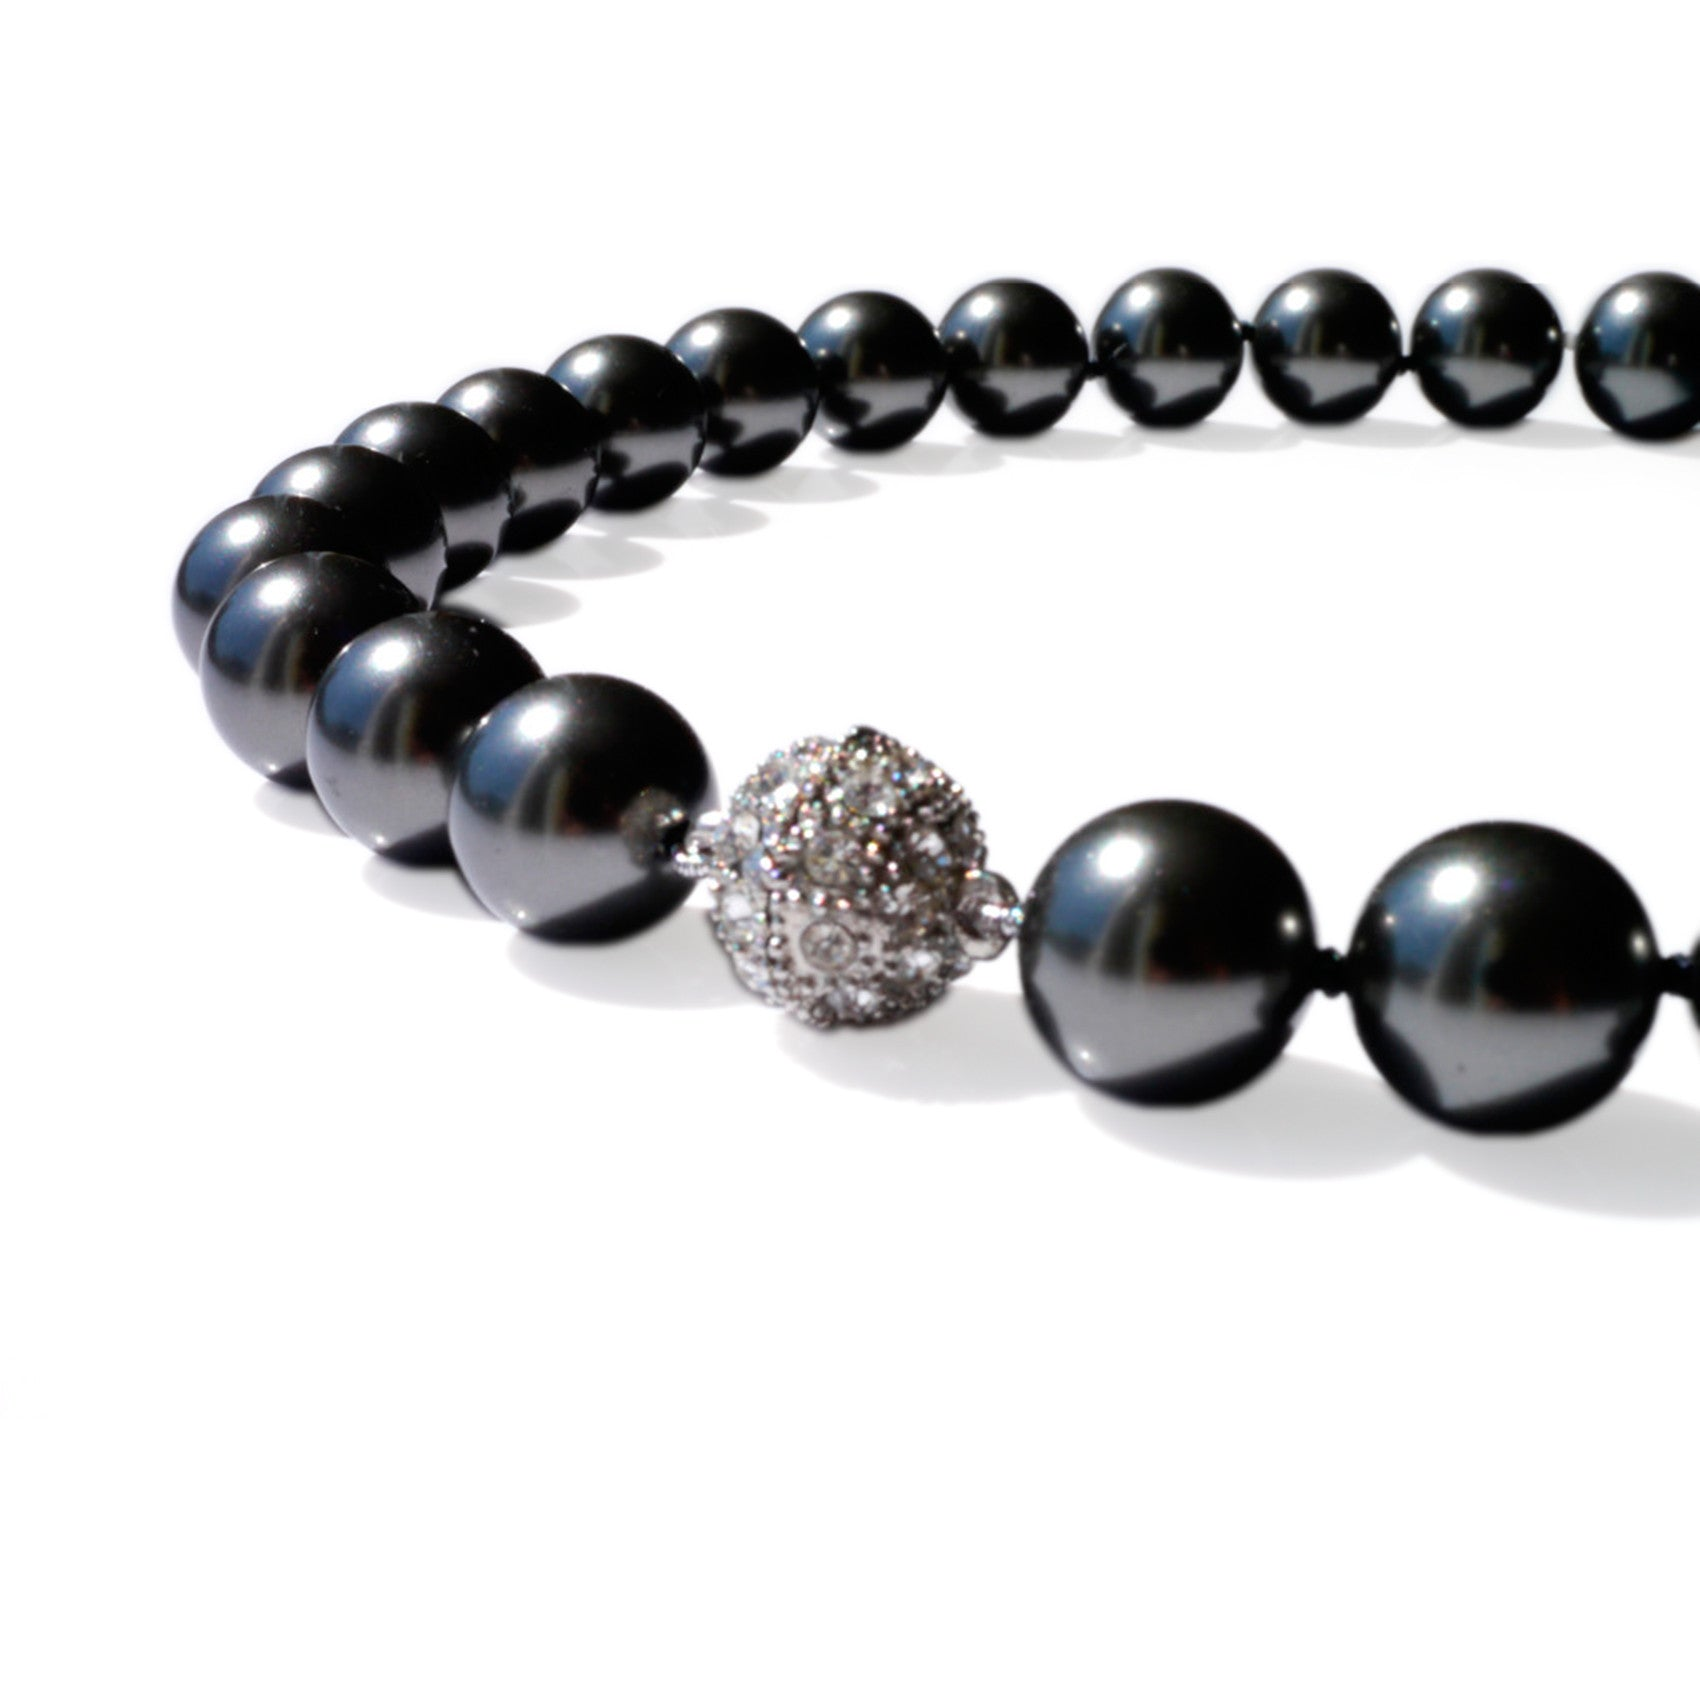 Pearls Girls: Oversized Pearl Necklace (Anthracite)